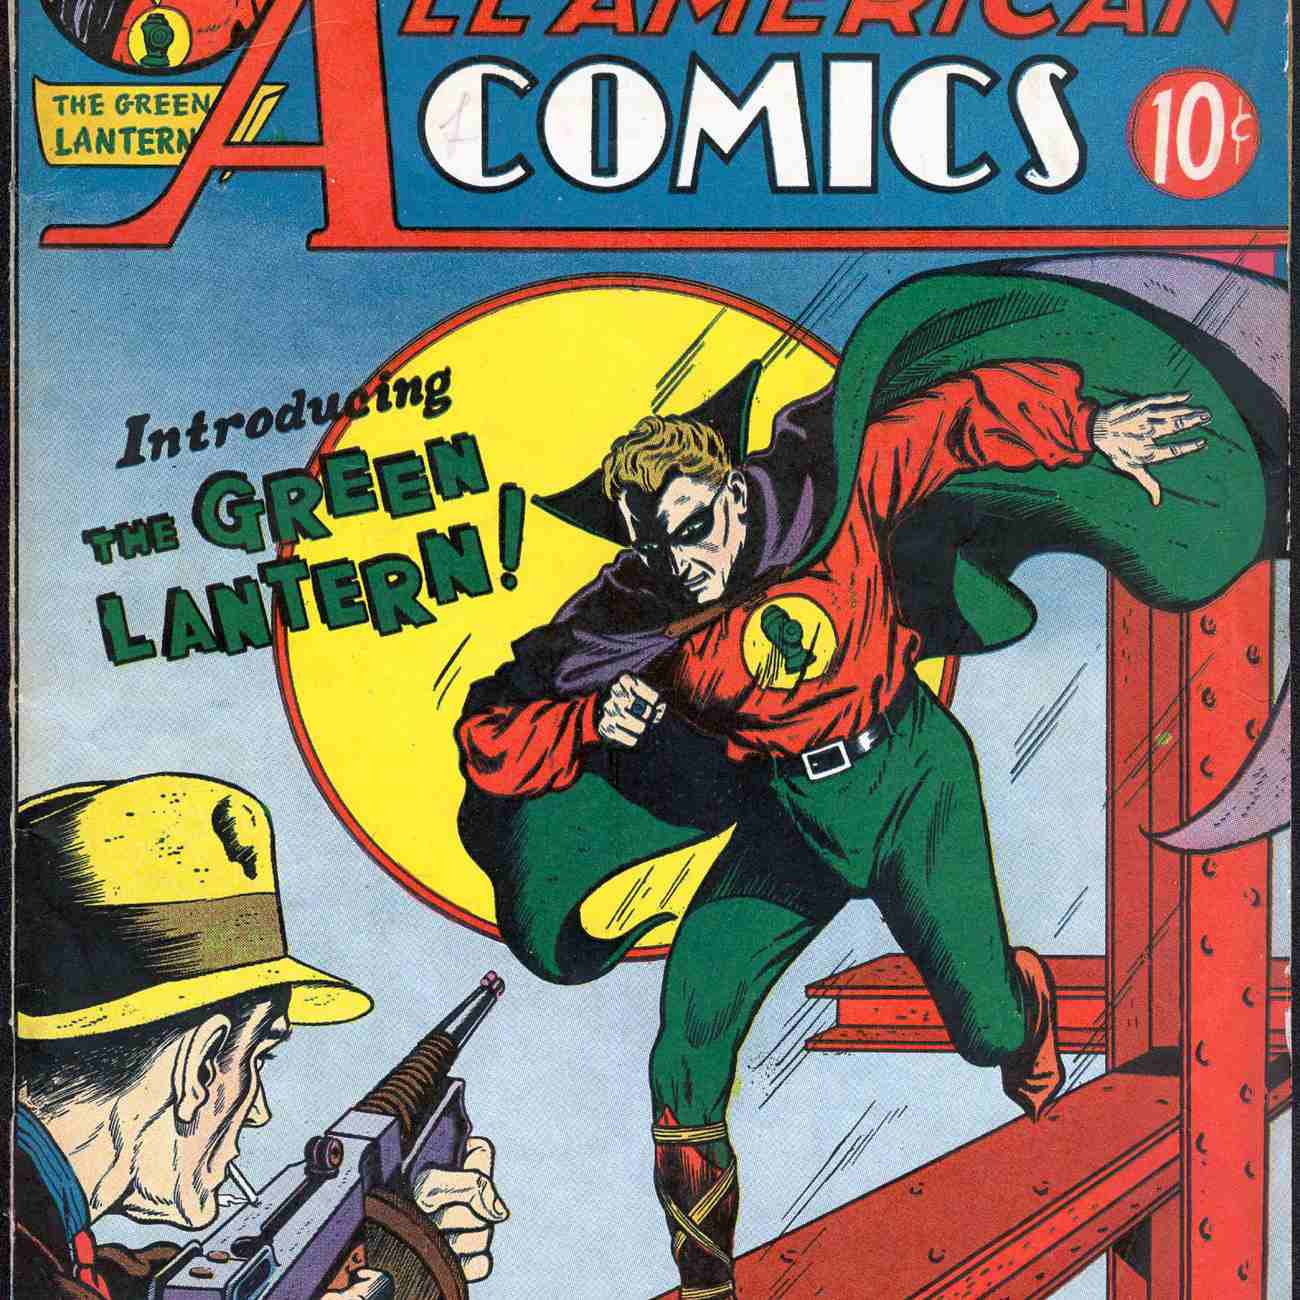 First appearance of Green Lantern